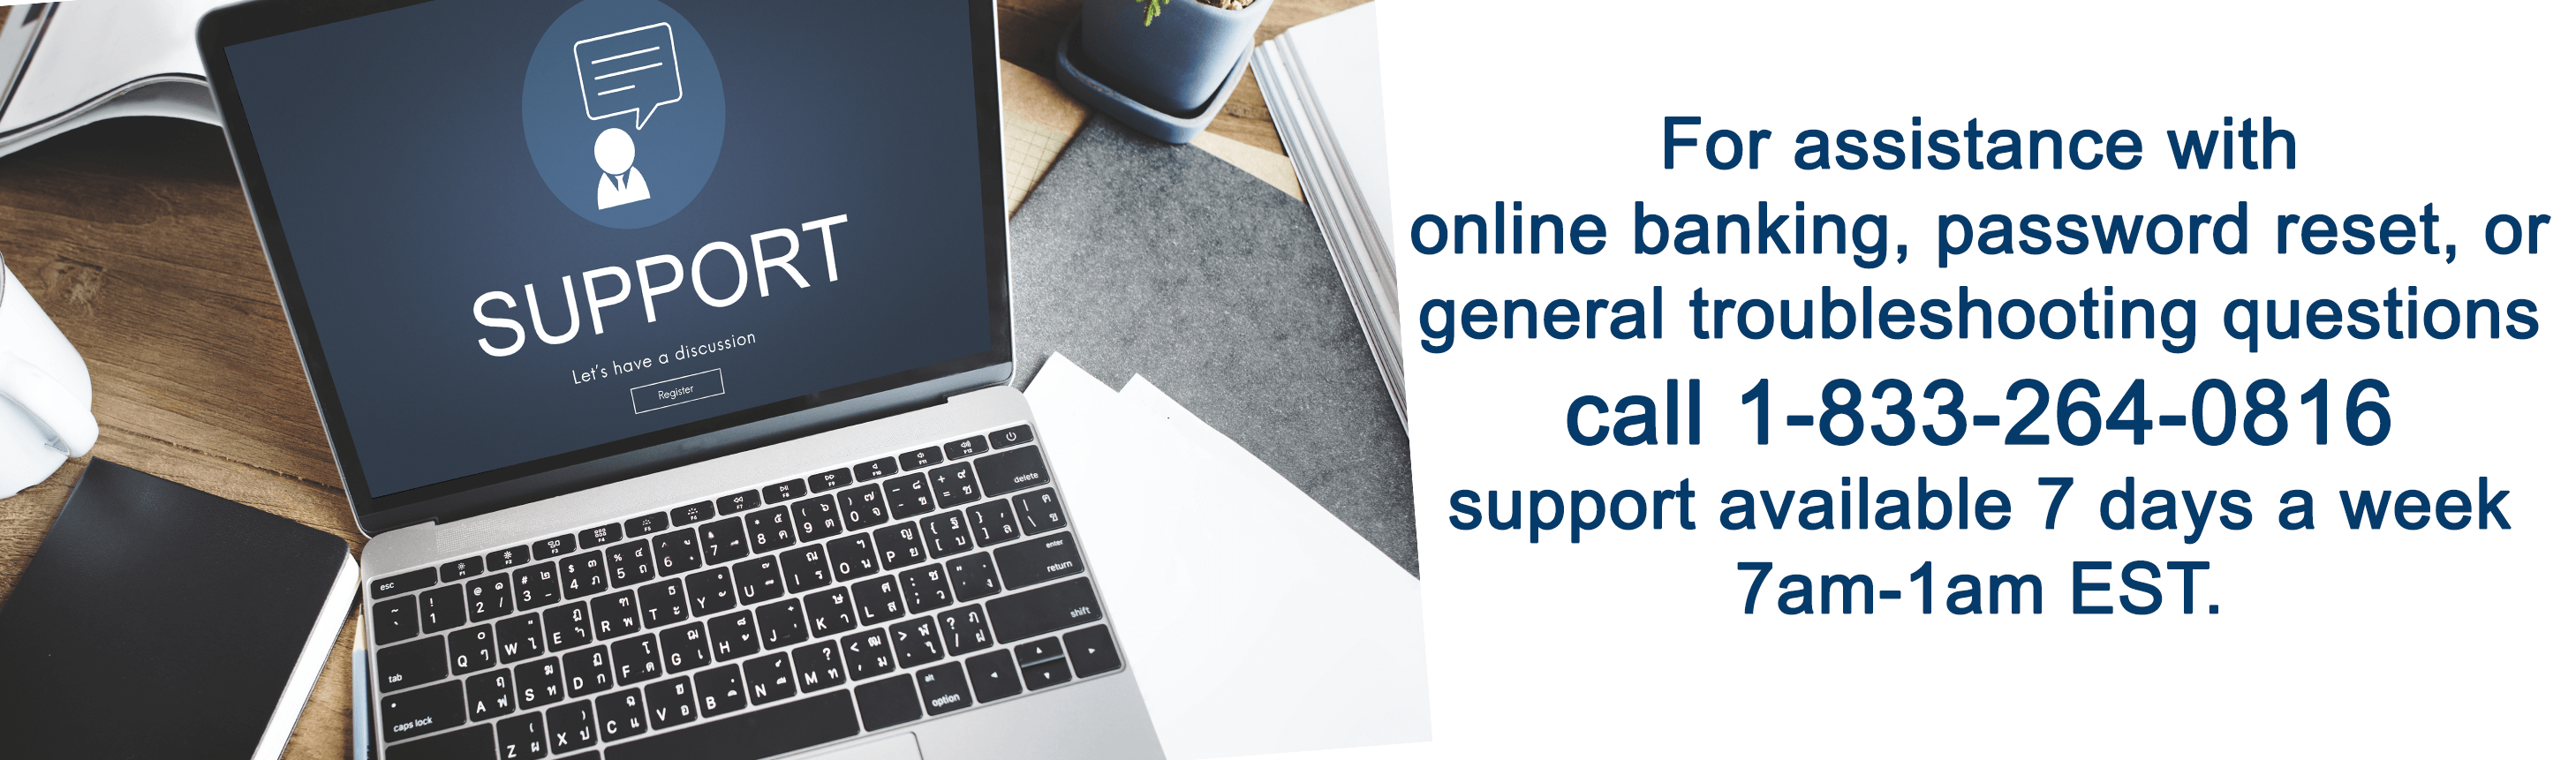 For assistance with online banking, password reset, or general troubleshooting questions call 1-833-264-0816 support available 7 days a week 7am-1am EST.